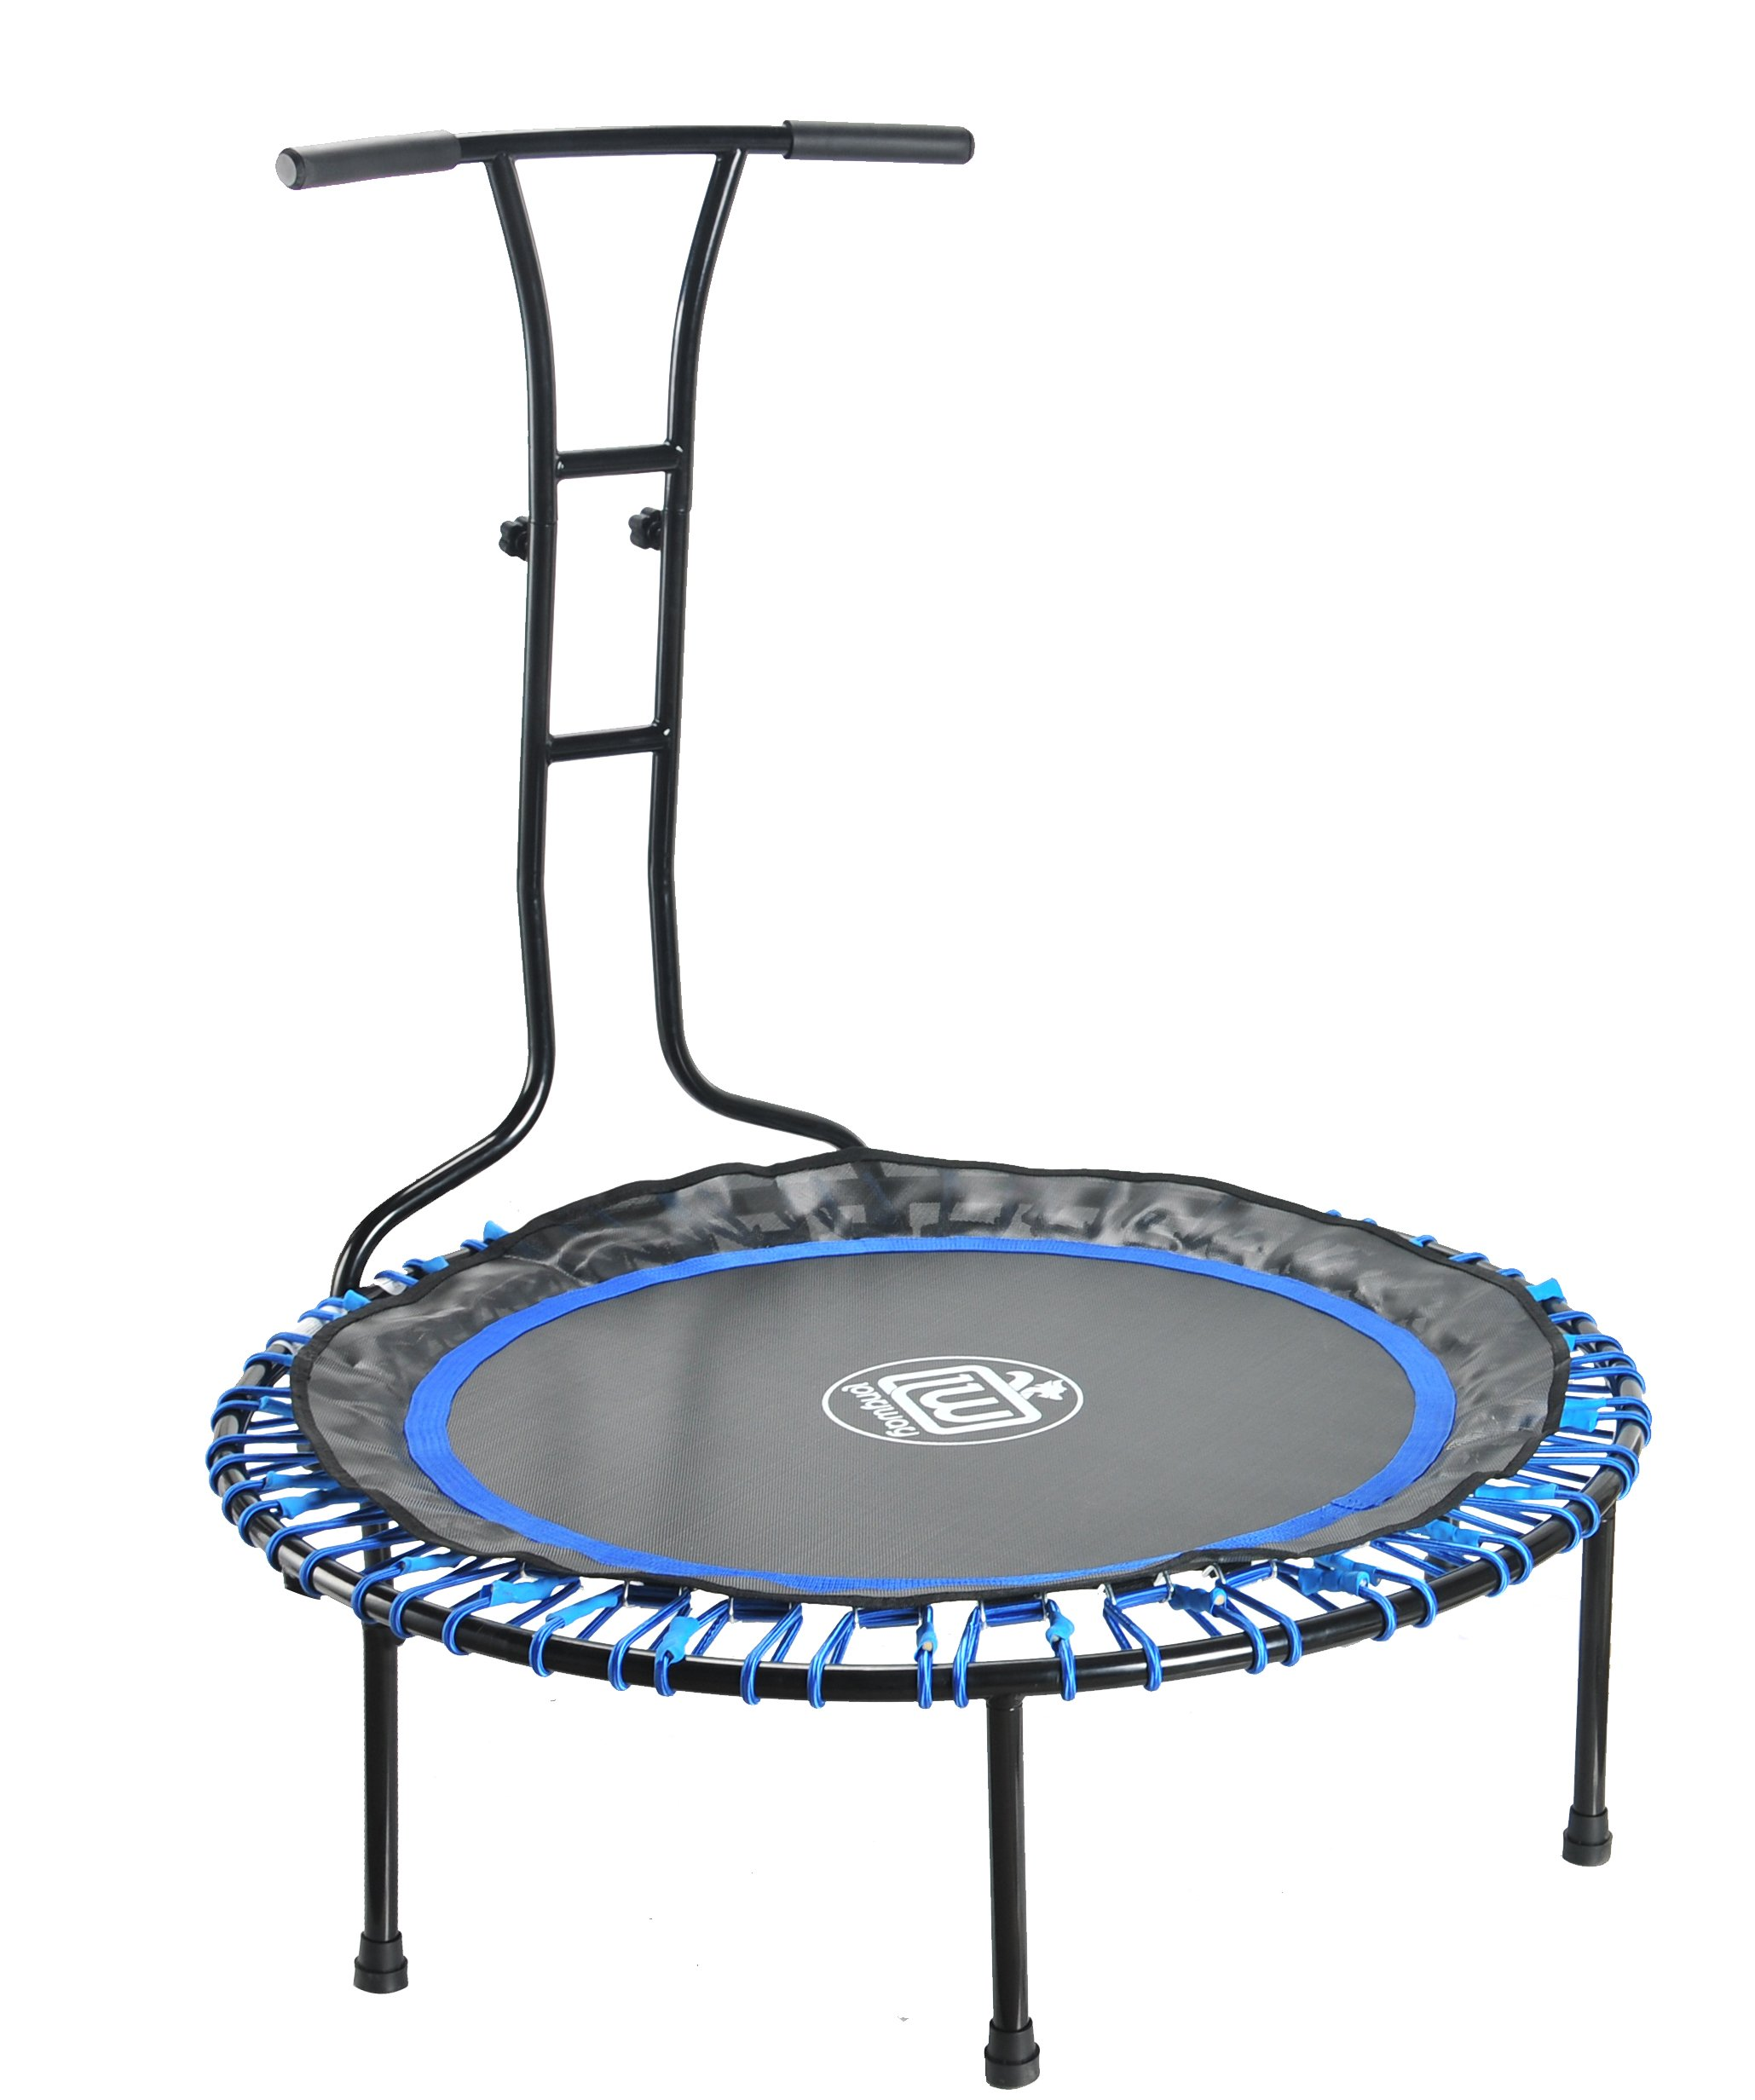 LONGWAY Trampoline In-Home Mini Exercise Trampoline Fitness Bungee Jump Mat